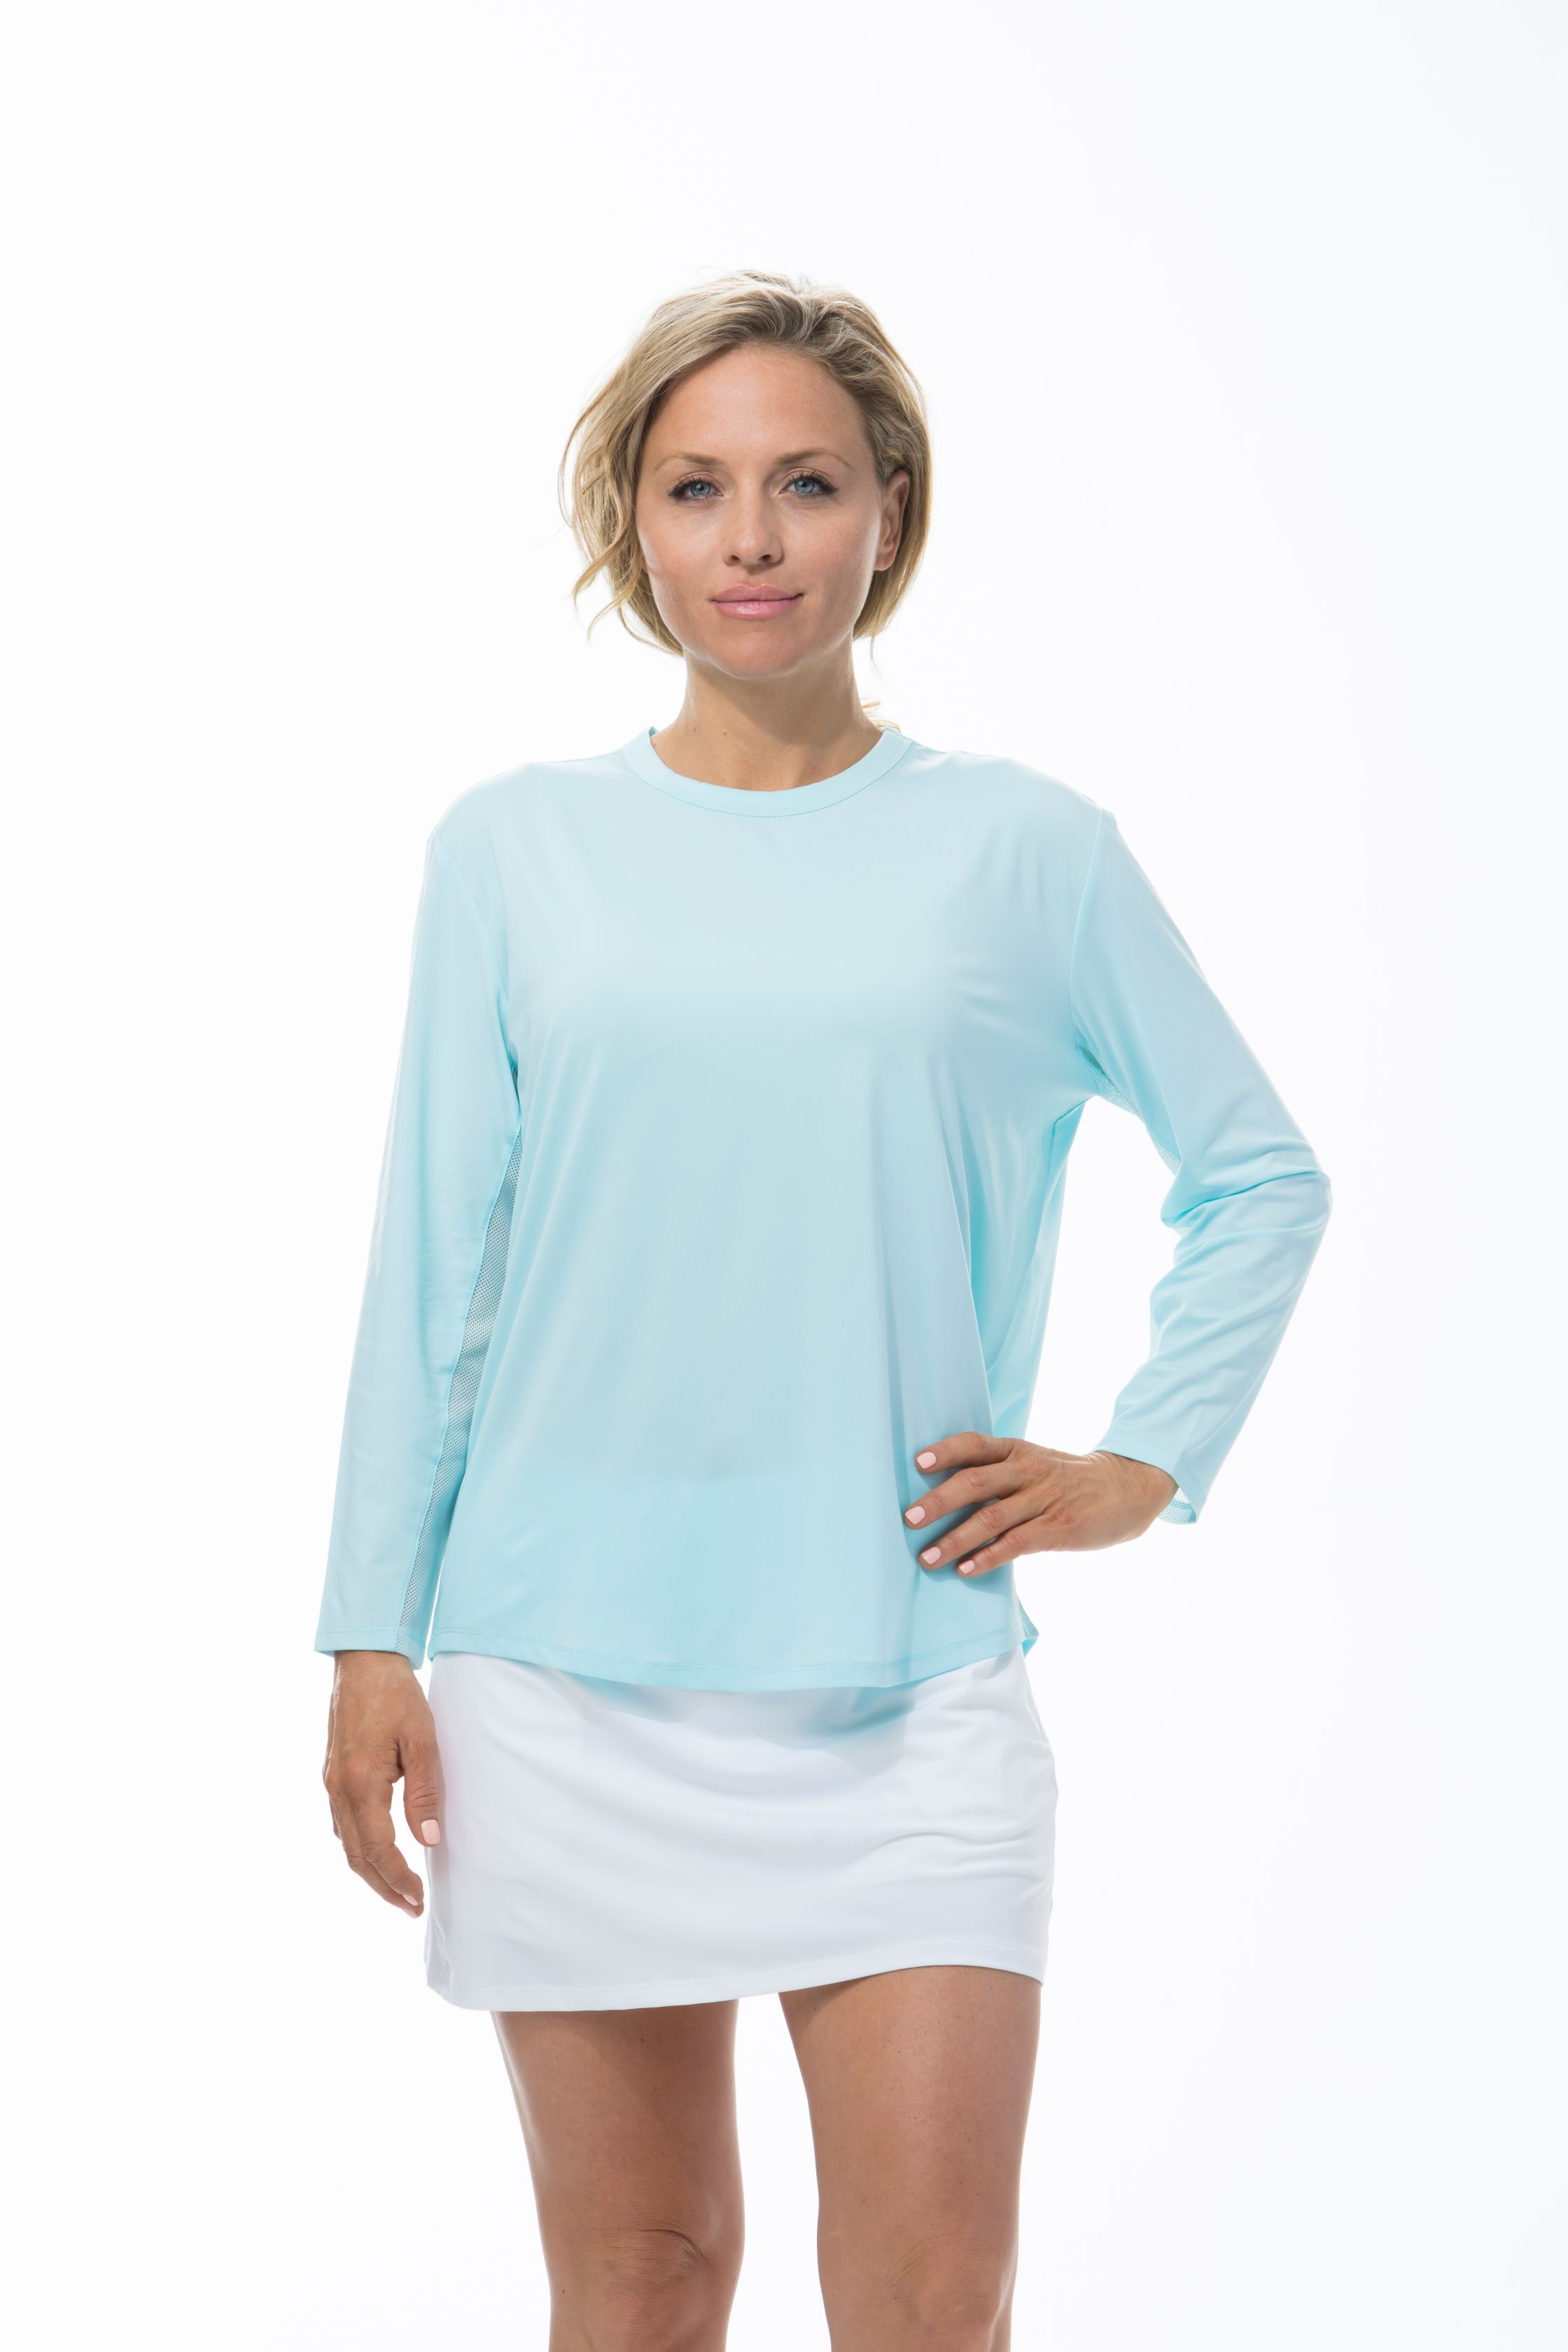 Bundle. 900730 Sunglow Relaxed Tee. Choose Two Colors for one Price. Free Shipping.